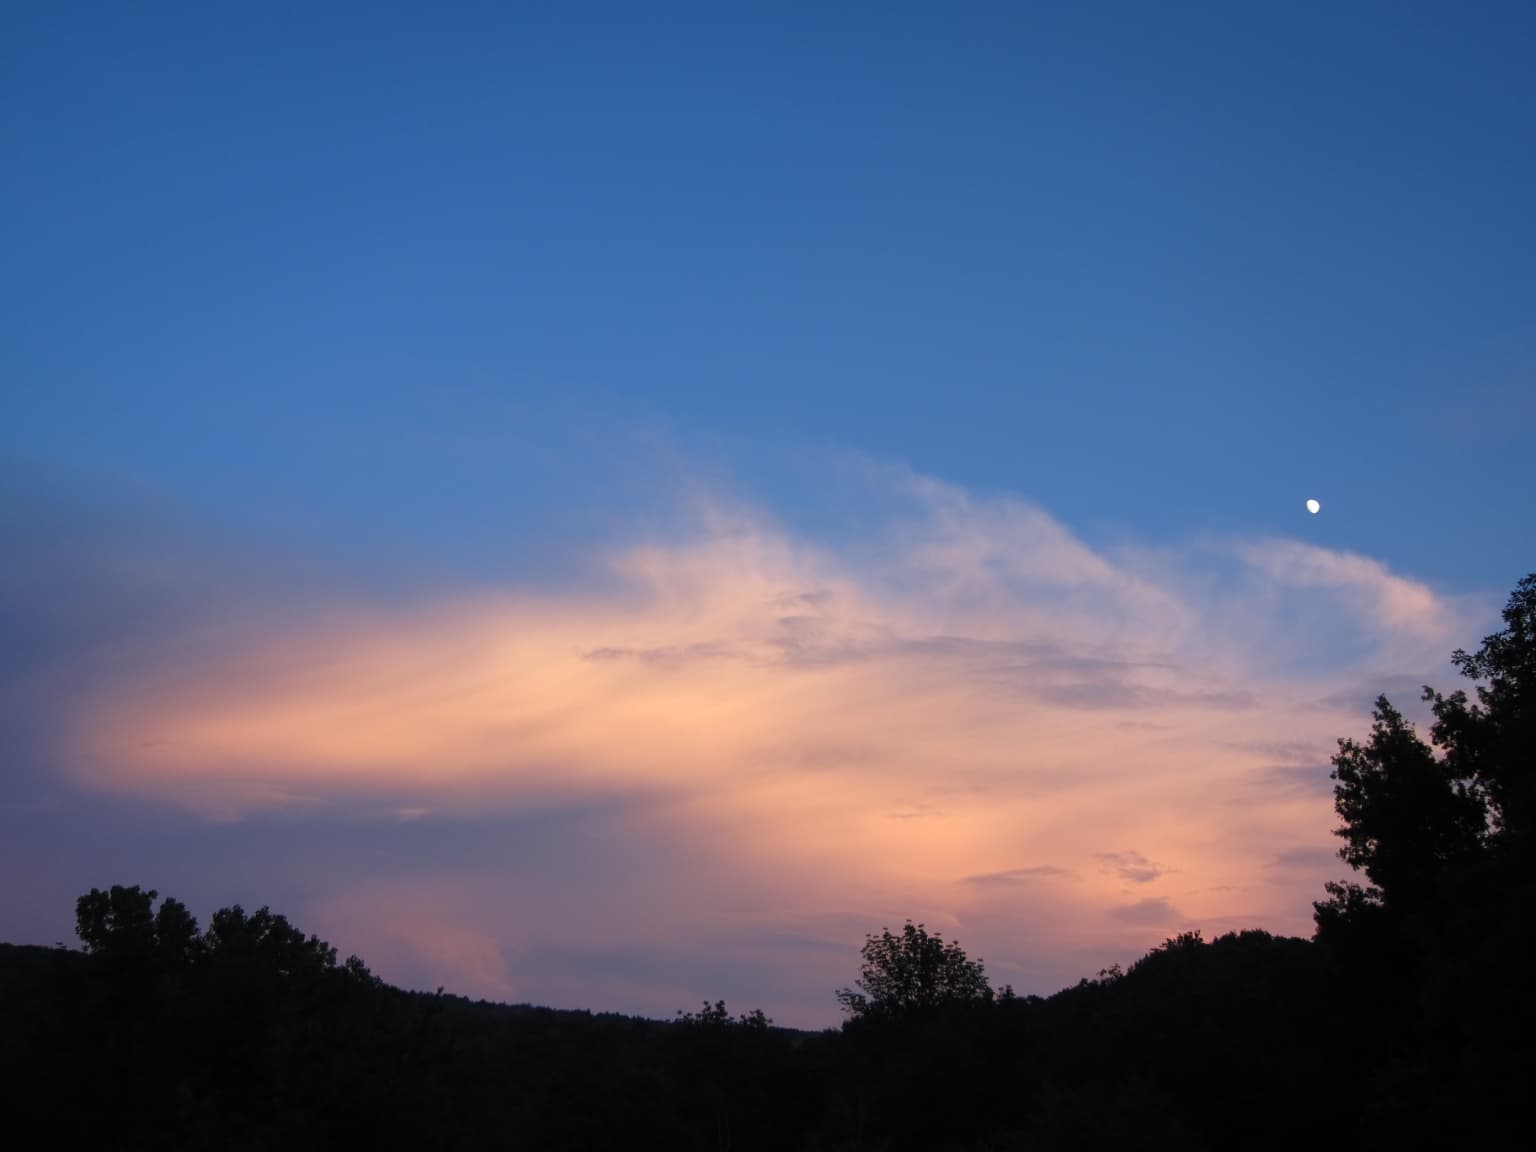 Decorative dusk moon with clouds photo